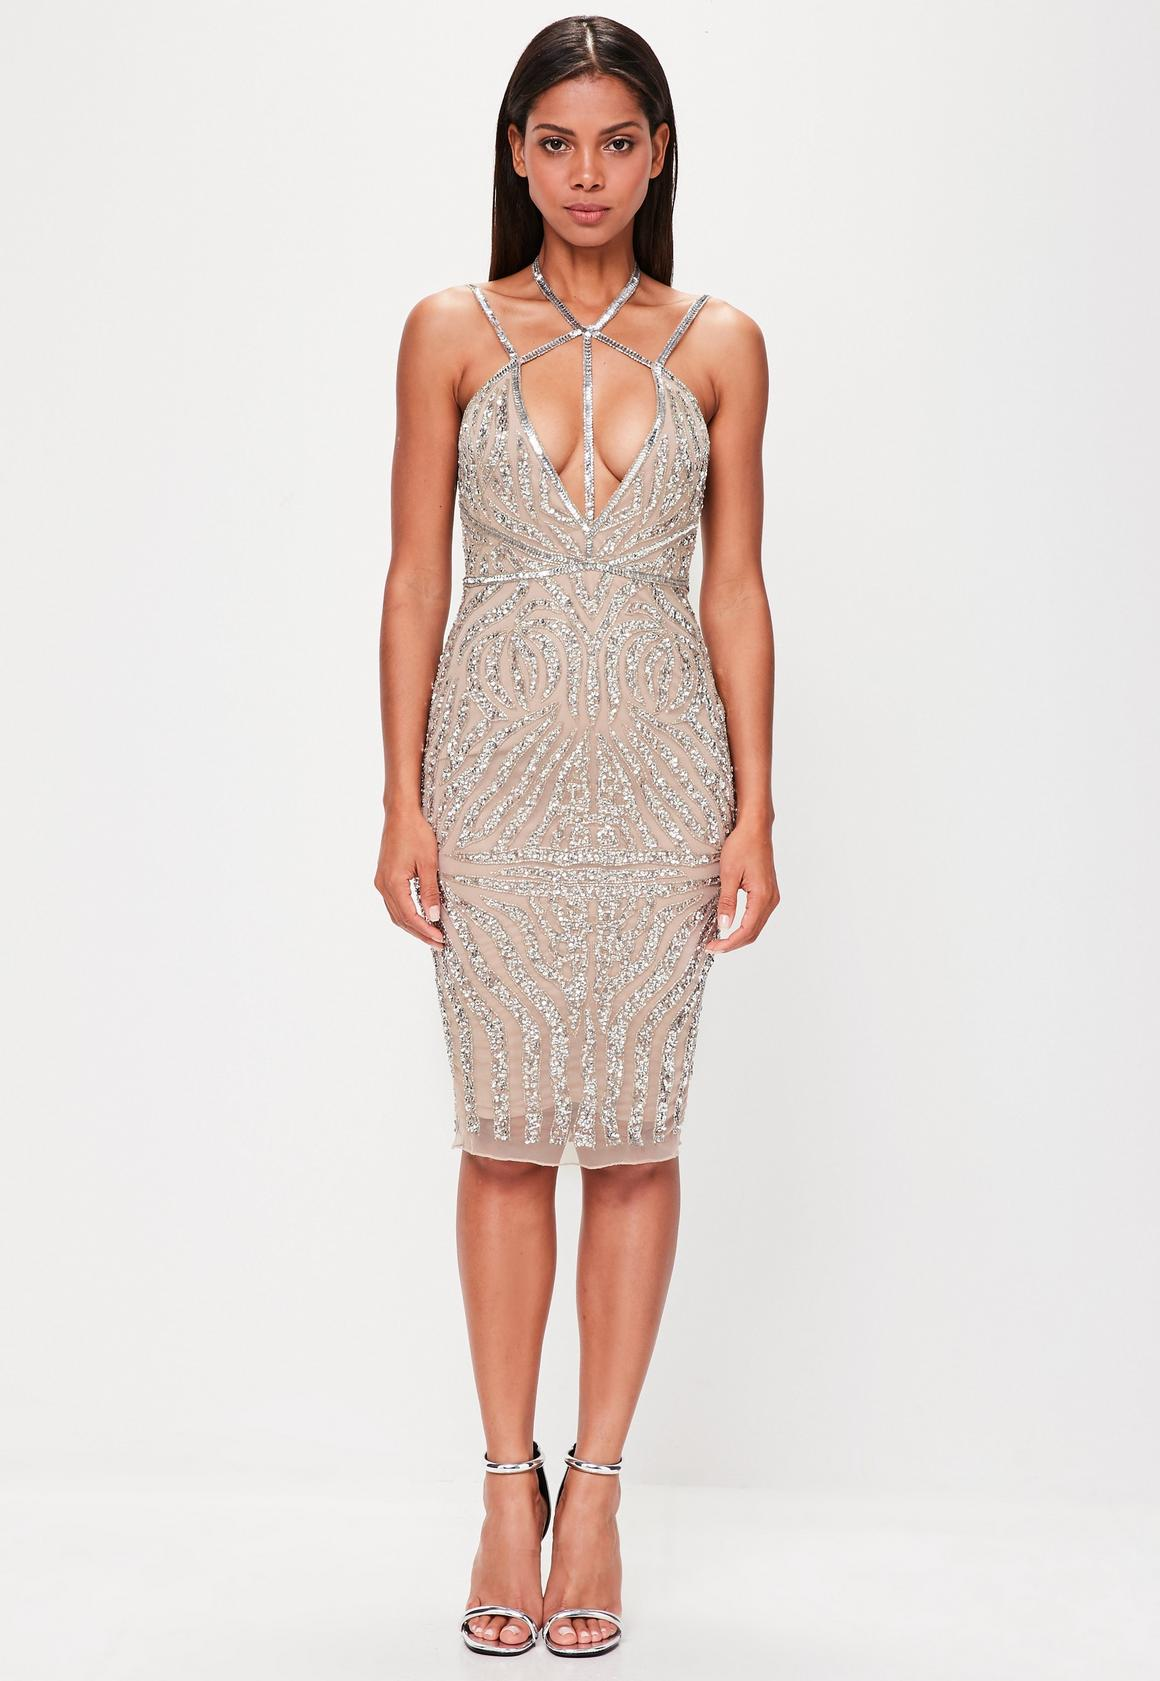 Image result for missguided peace love embellished midi